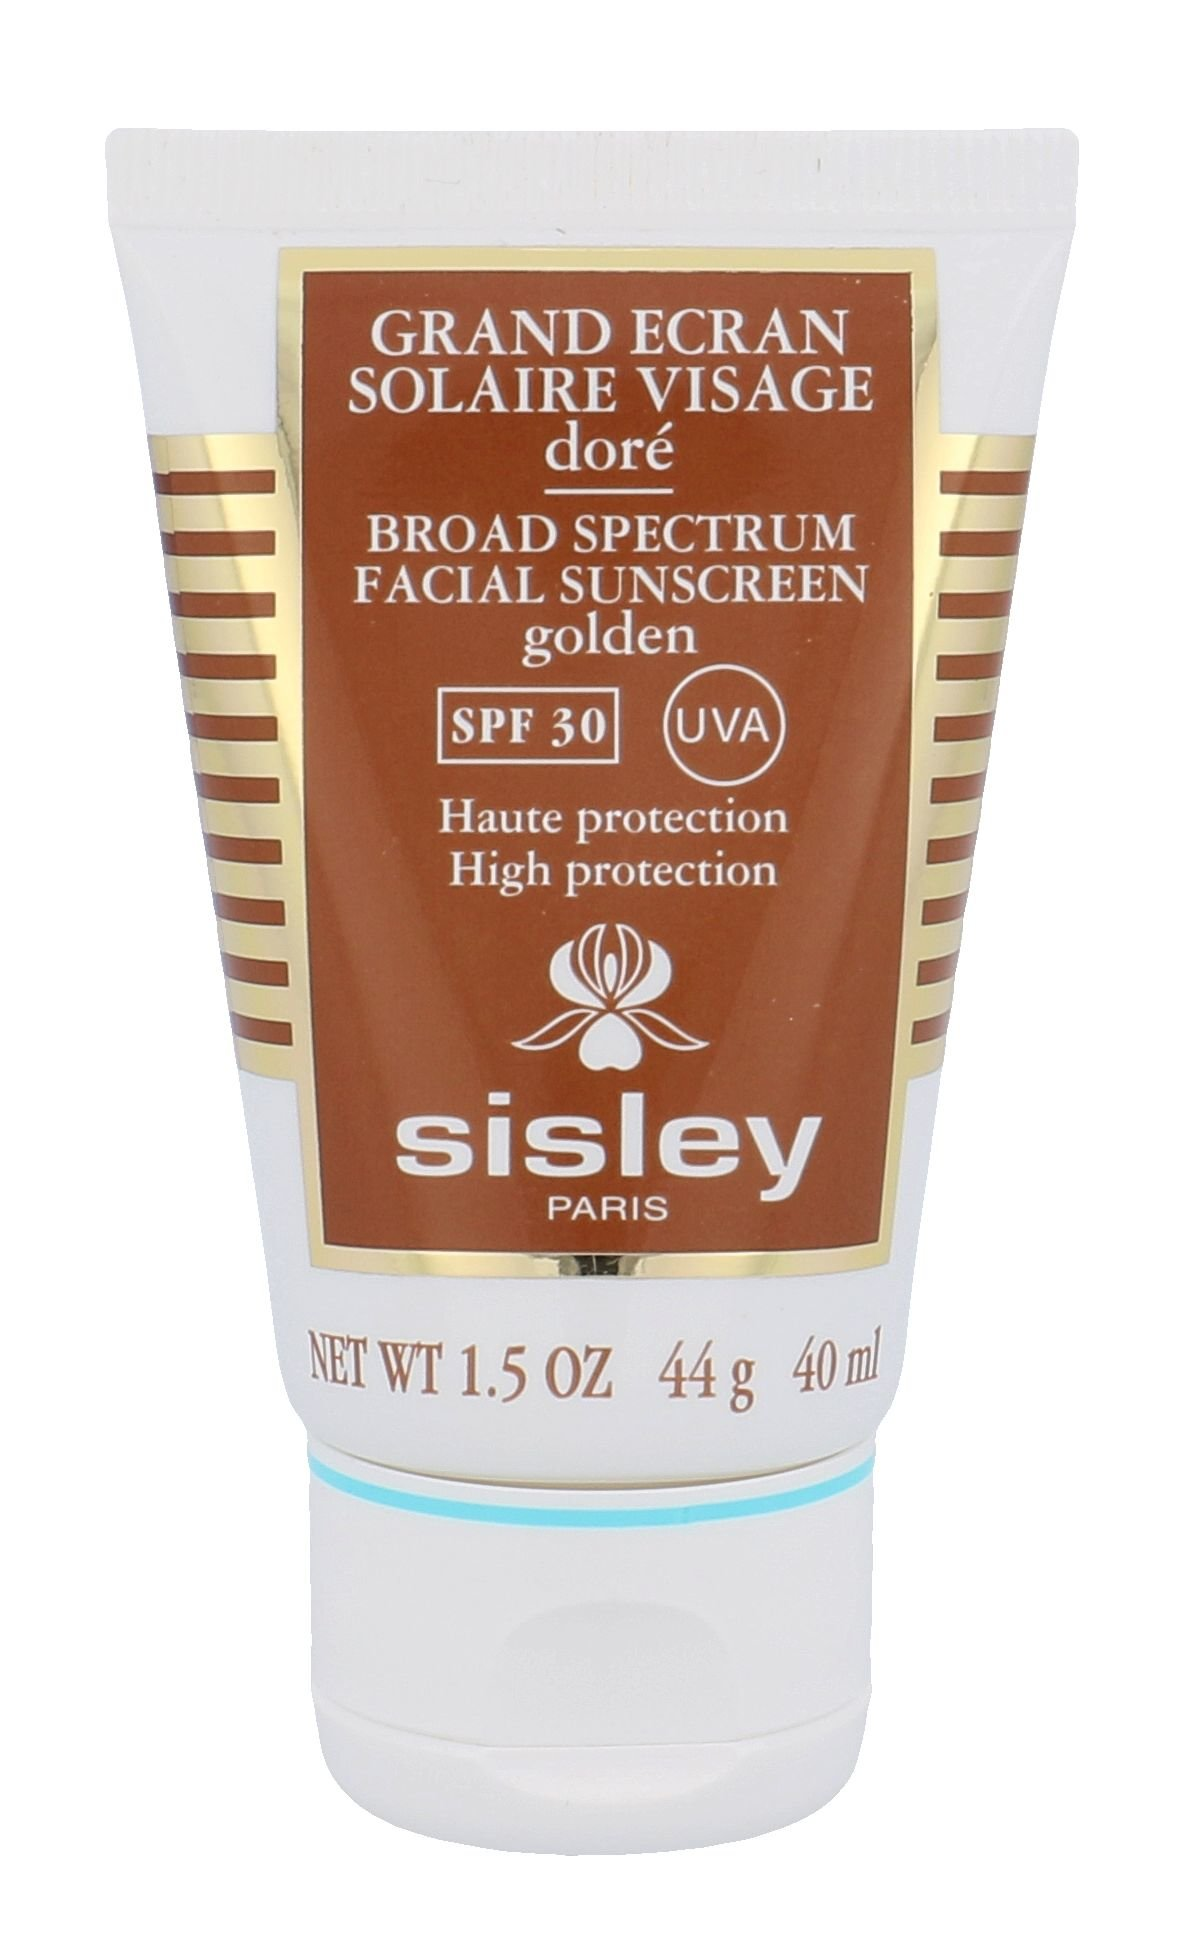 Sisley Broad Spectrum Facial Sunscreen SPF30 Cosmetic 40ml Doré